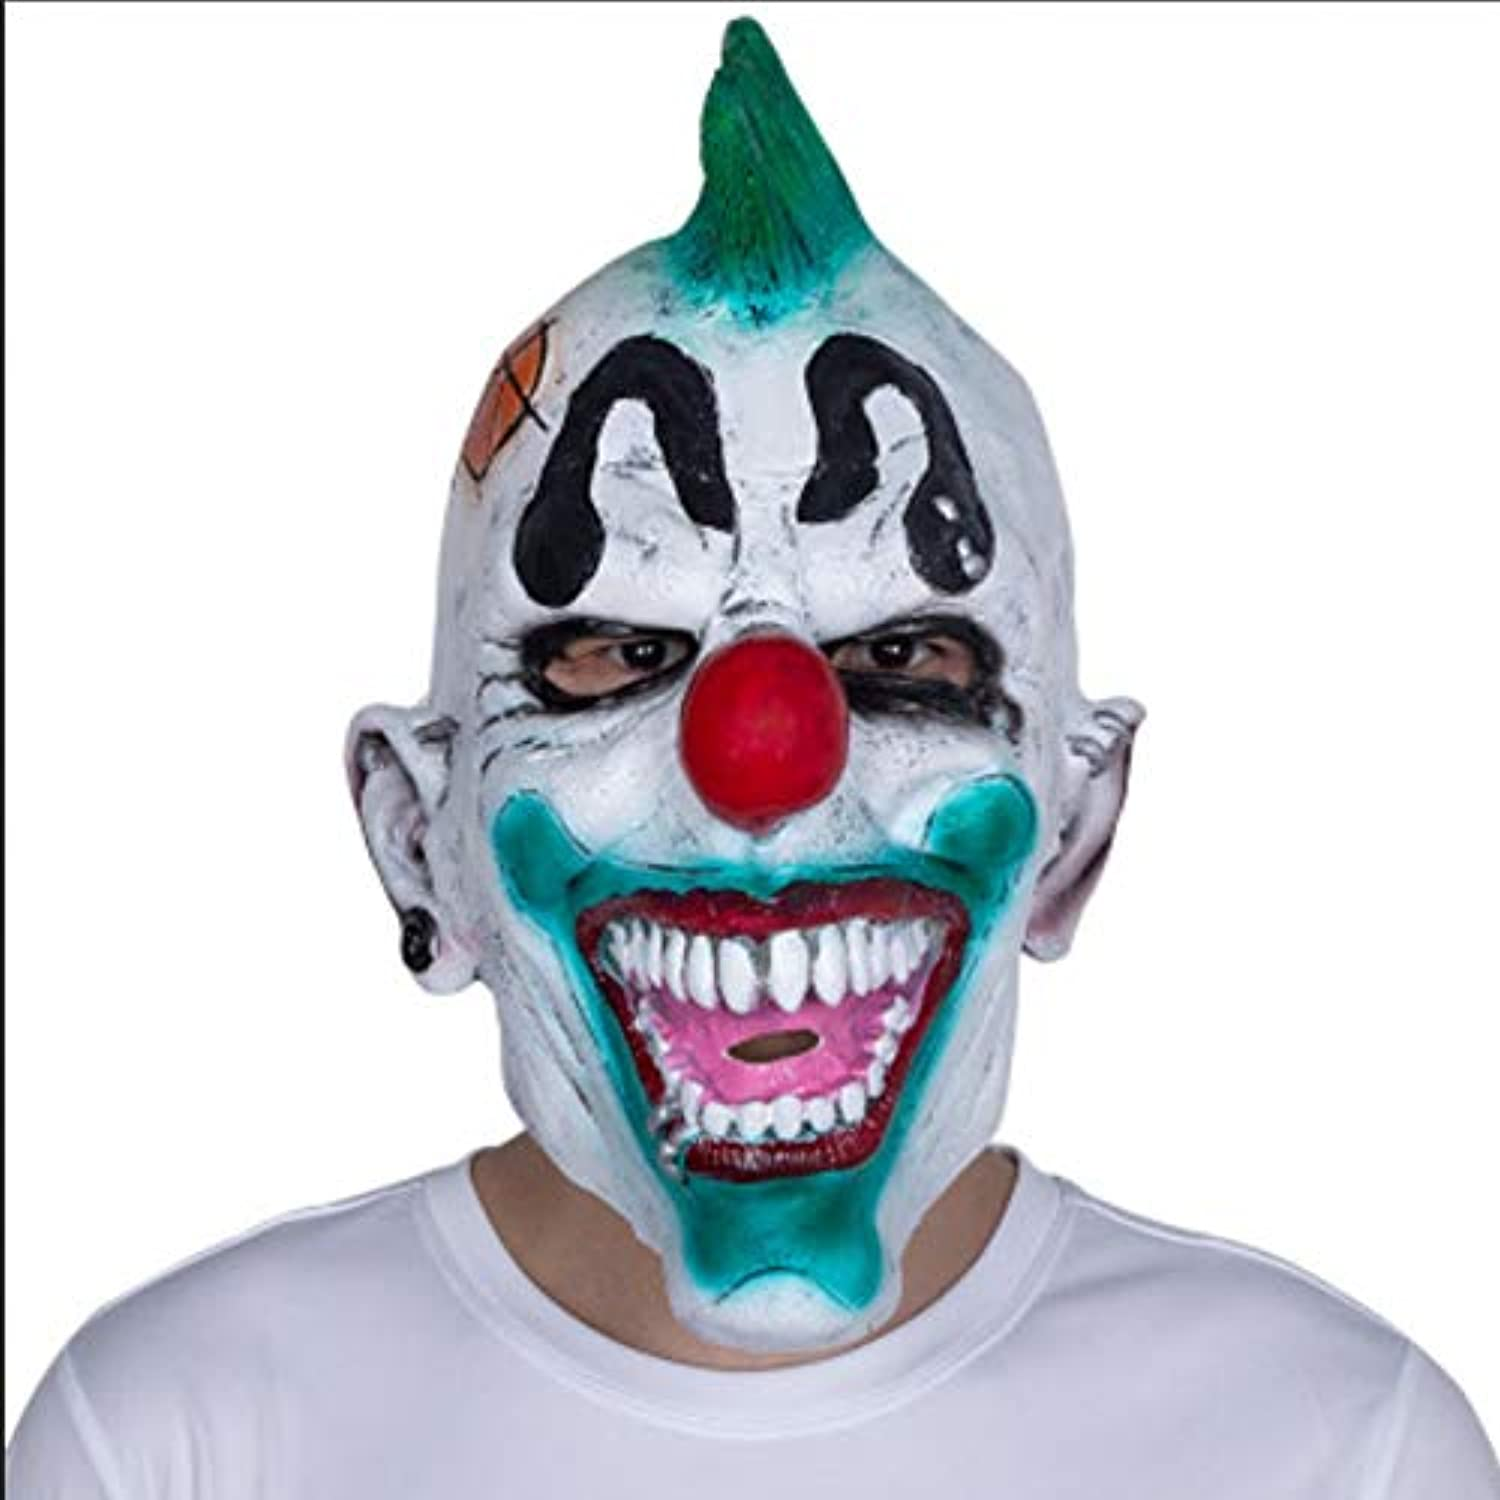 Sonwaohand Halloween Latex Headgear Funny Clown Mask Prom Party Tricky Prop Mask Horror Mean code 4